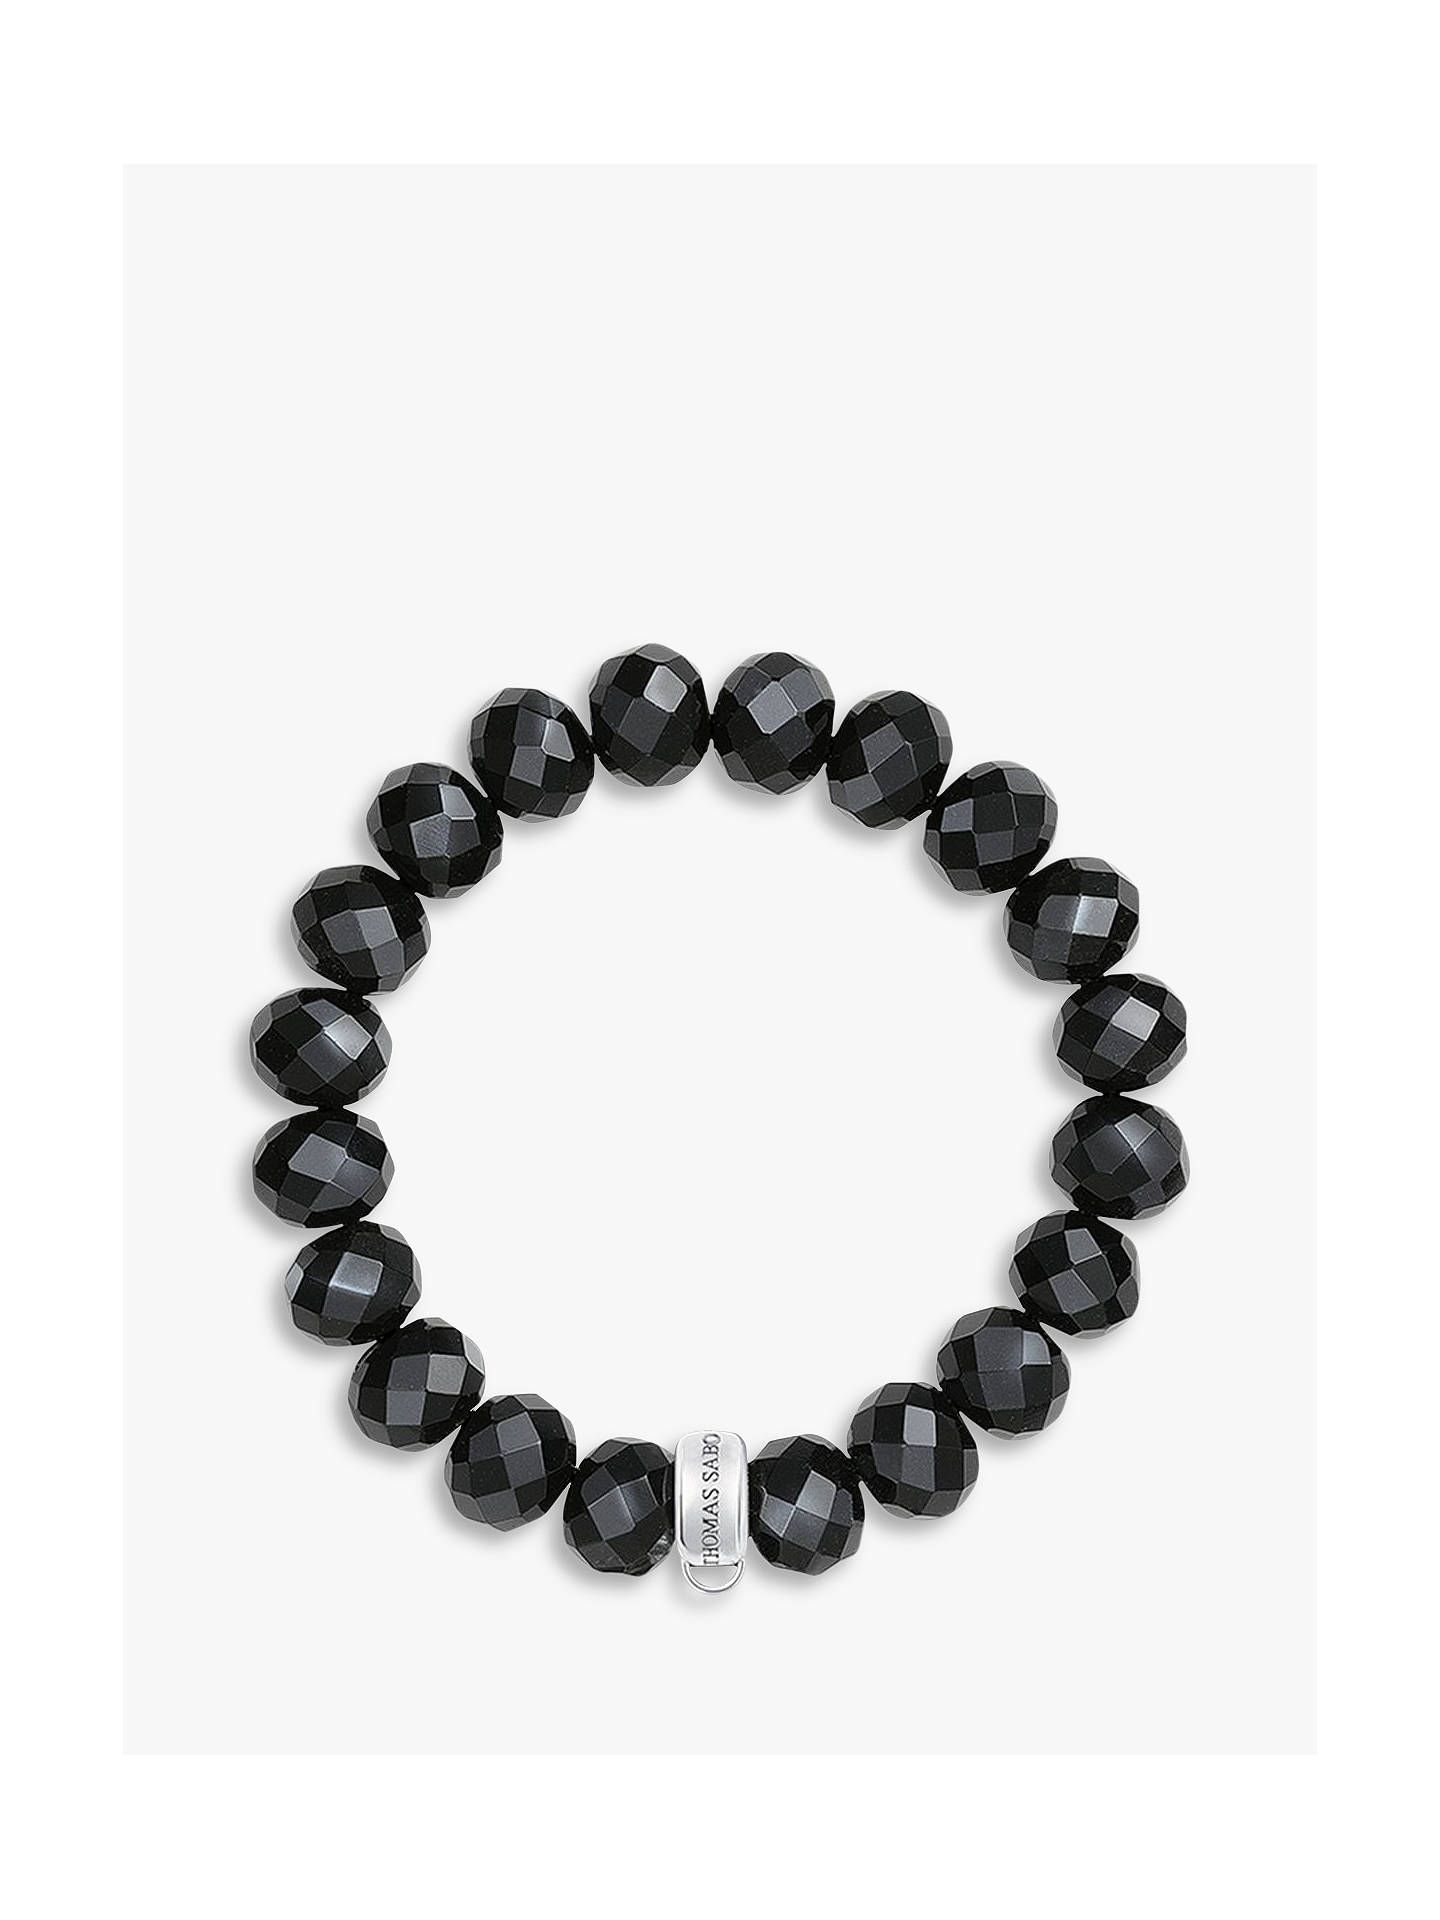 Thomas Sabo Charm Club Obsidian Bracelet Black L Online At Johnlewis